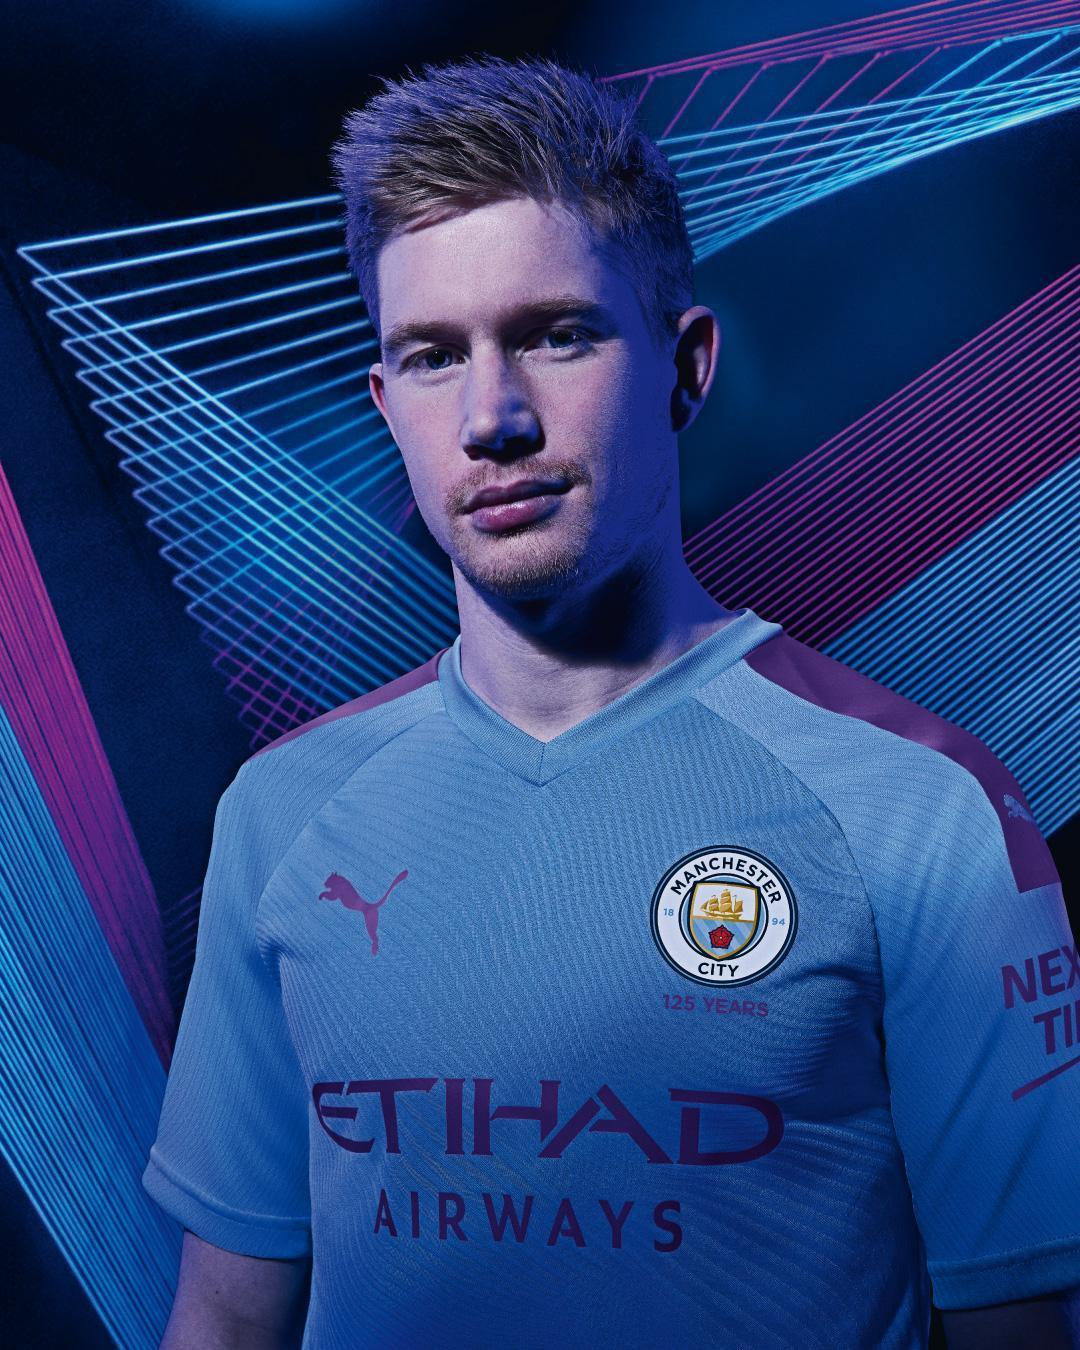 Kevin De Bruyne Poster - KoLPaPer - Awesome Free HD Wallpapers